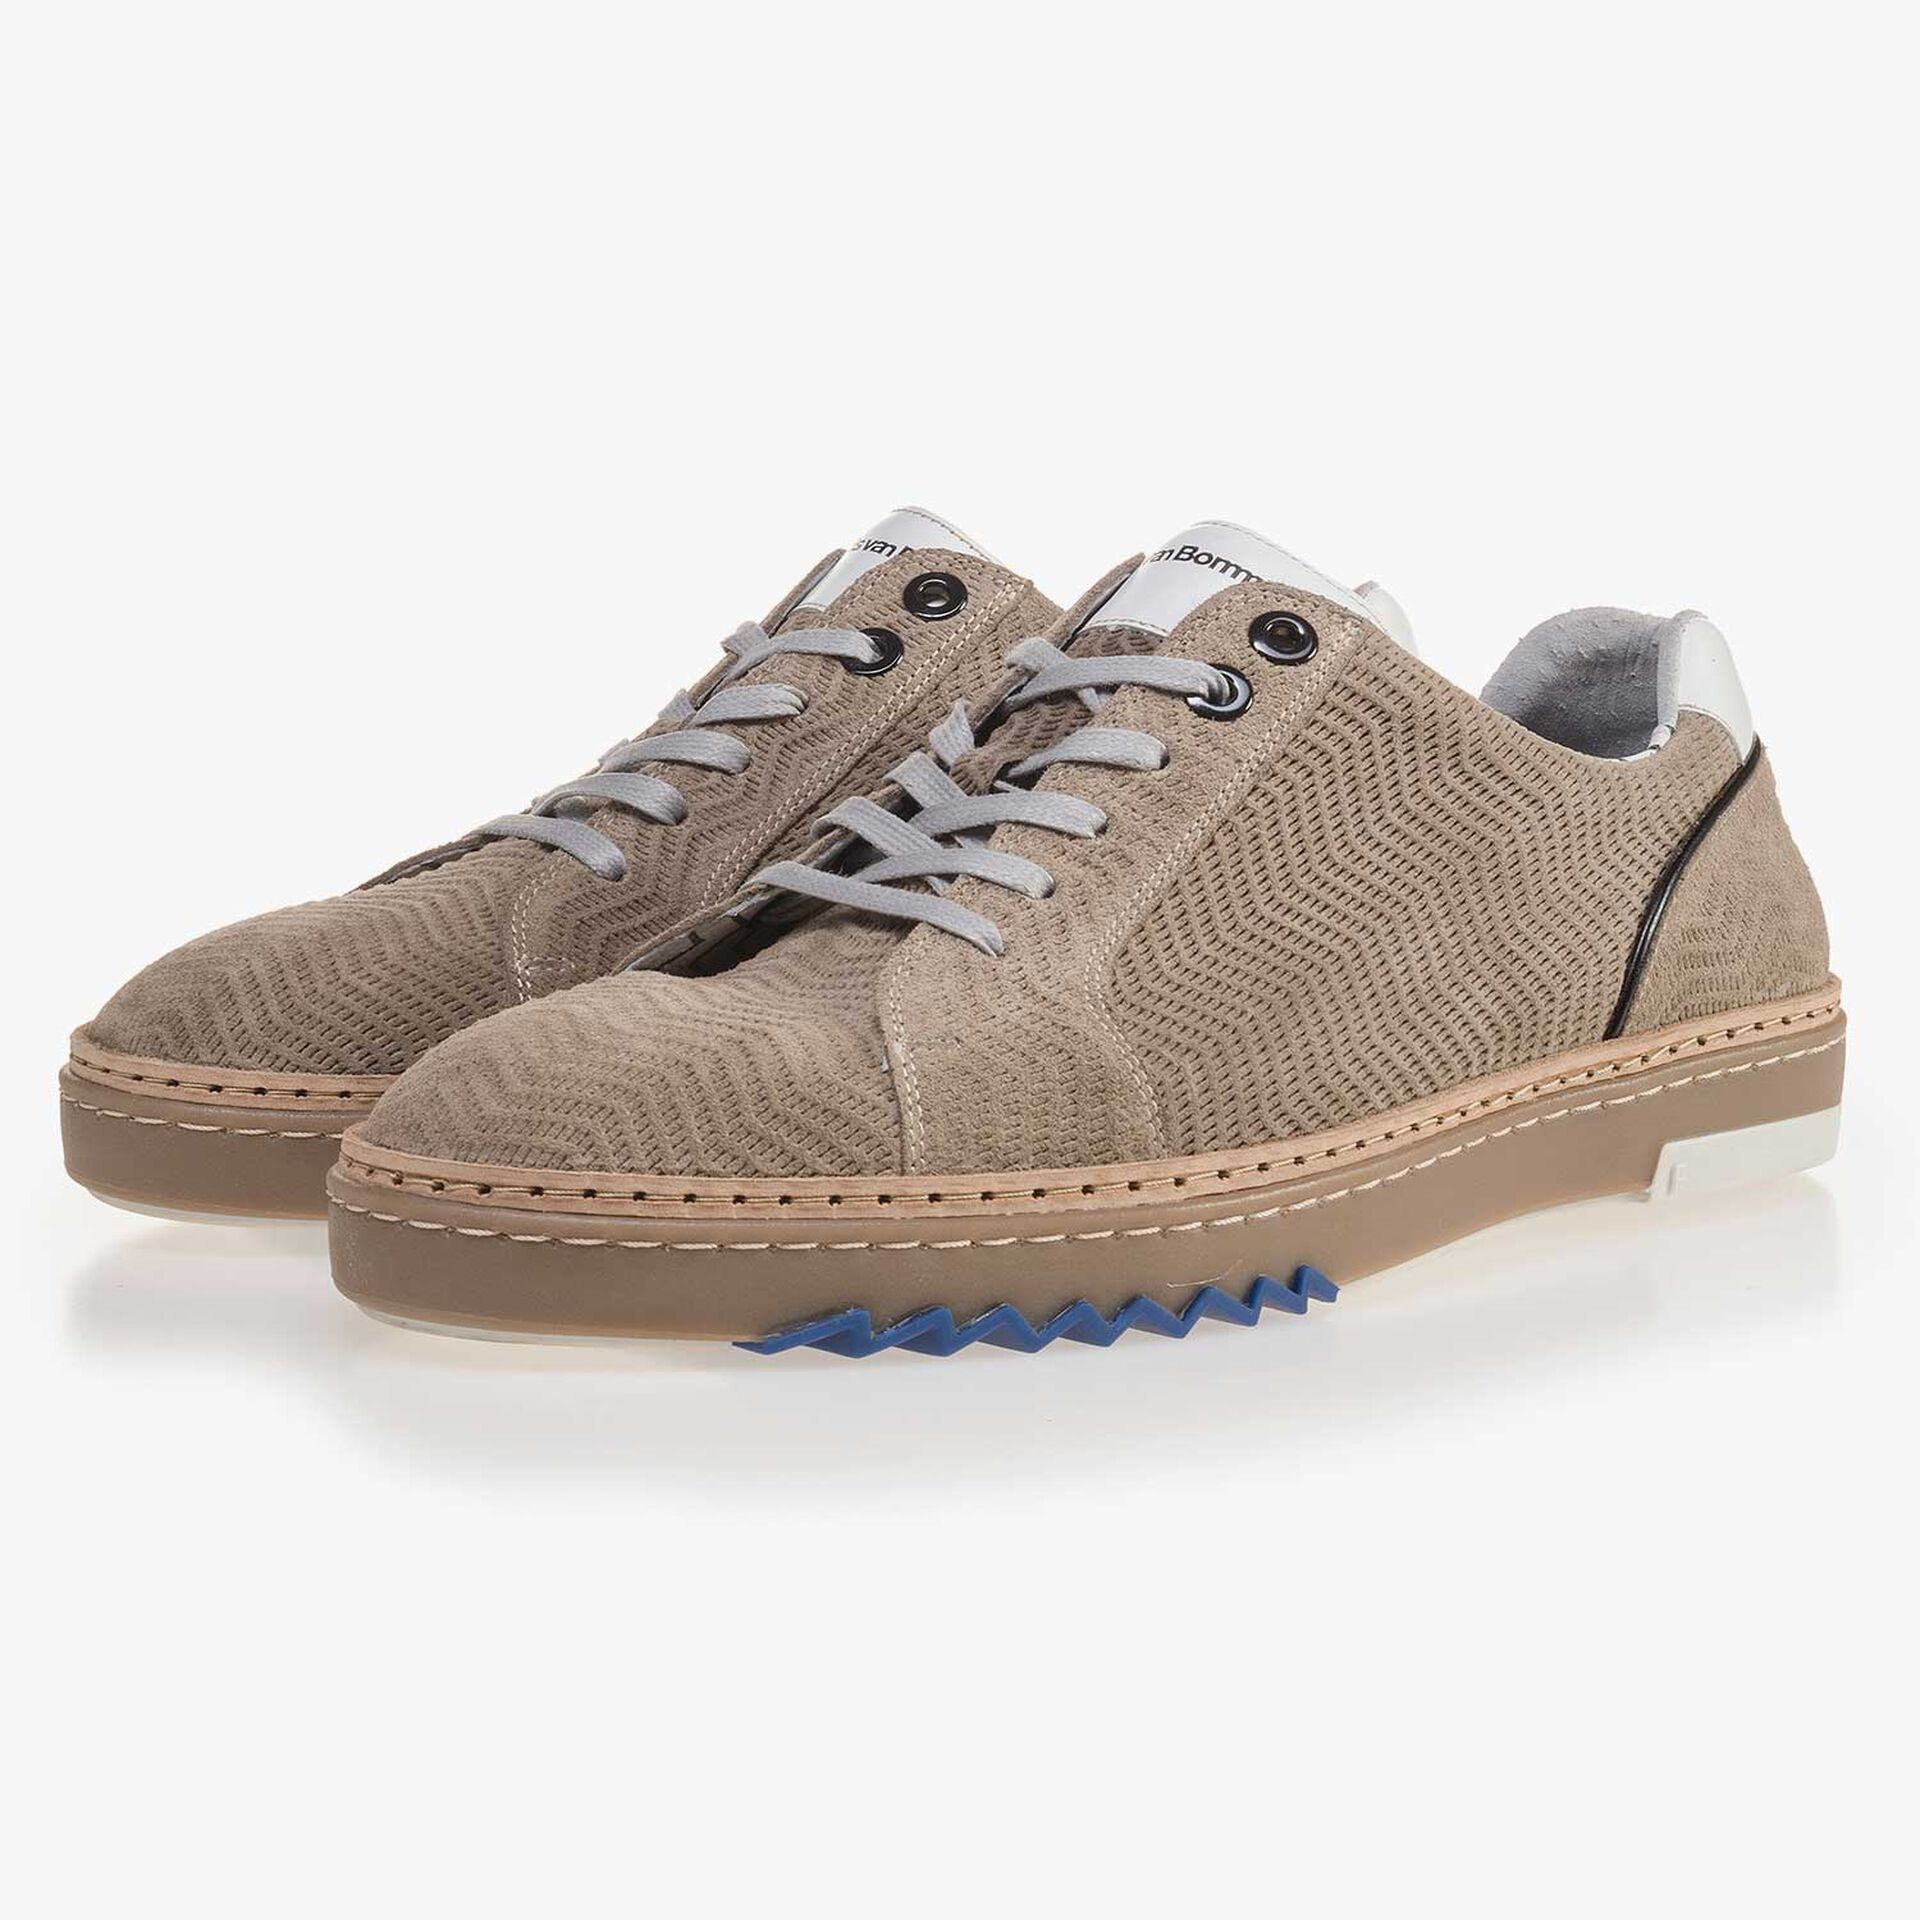 Sand-coloured, leather sneaker with pattern